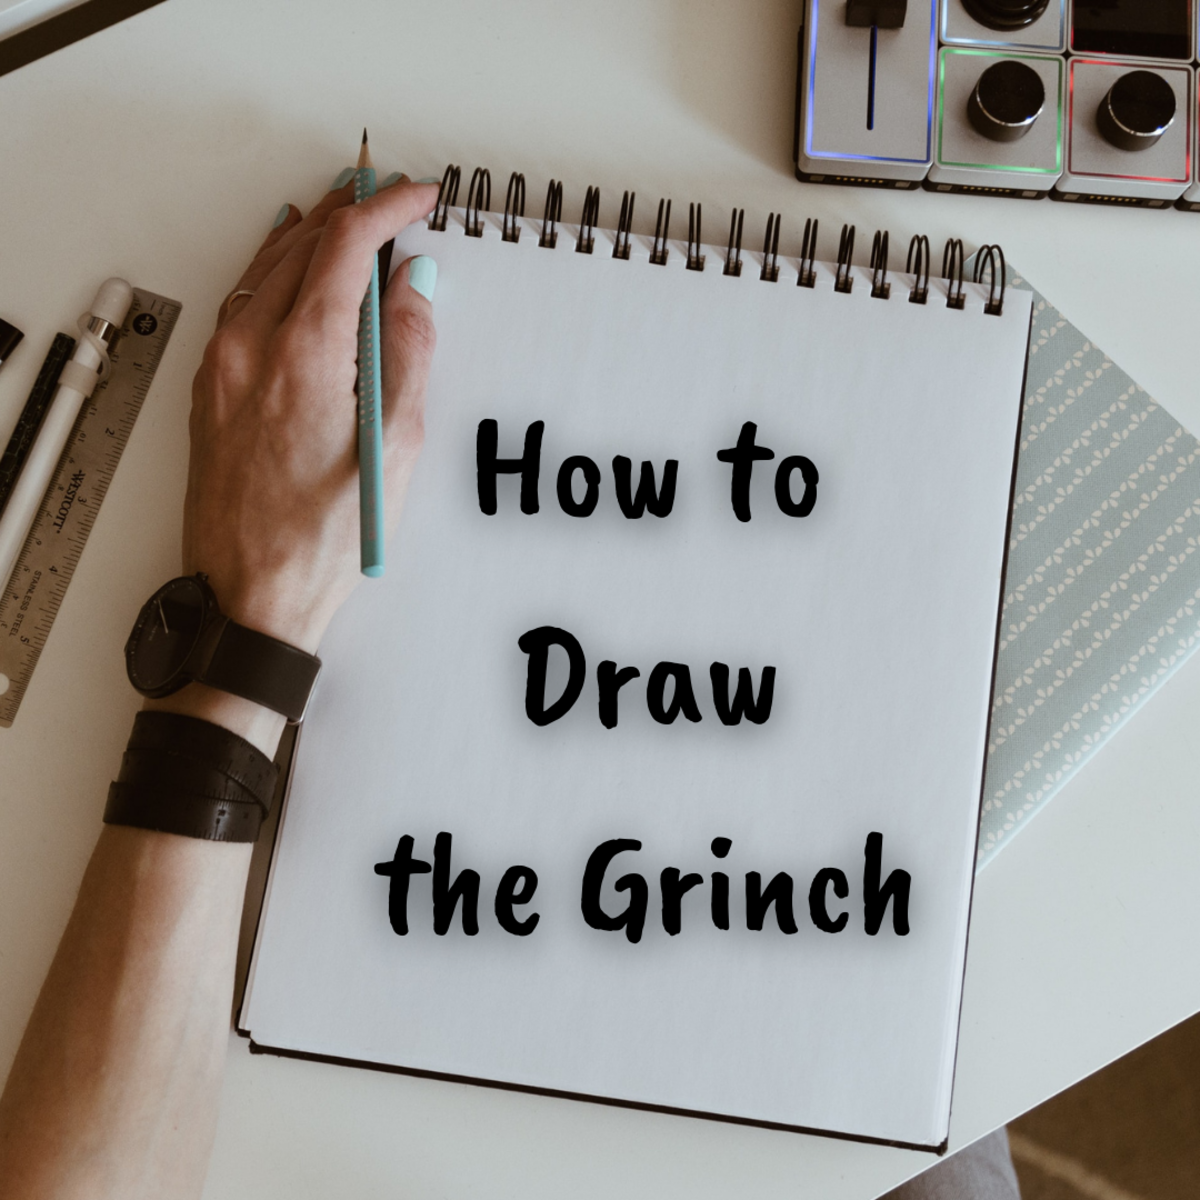 Learn how to draw the Grinch with the easy, step-by-step tutorial!